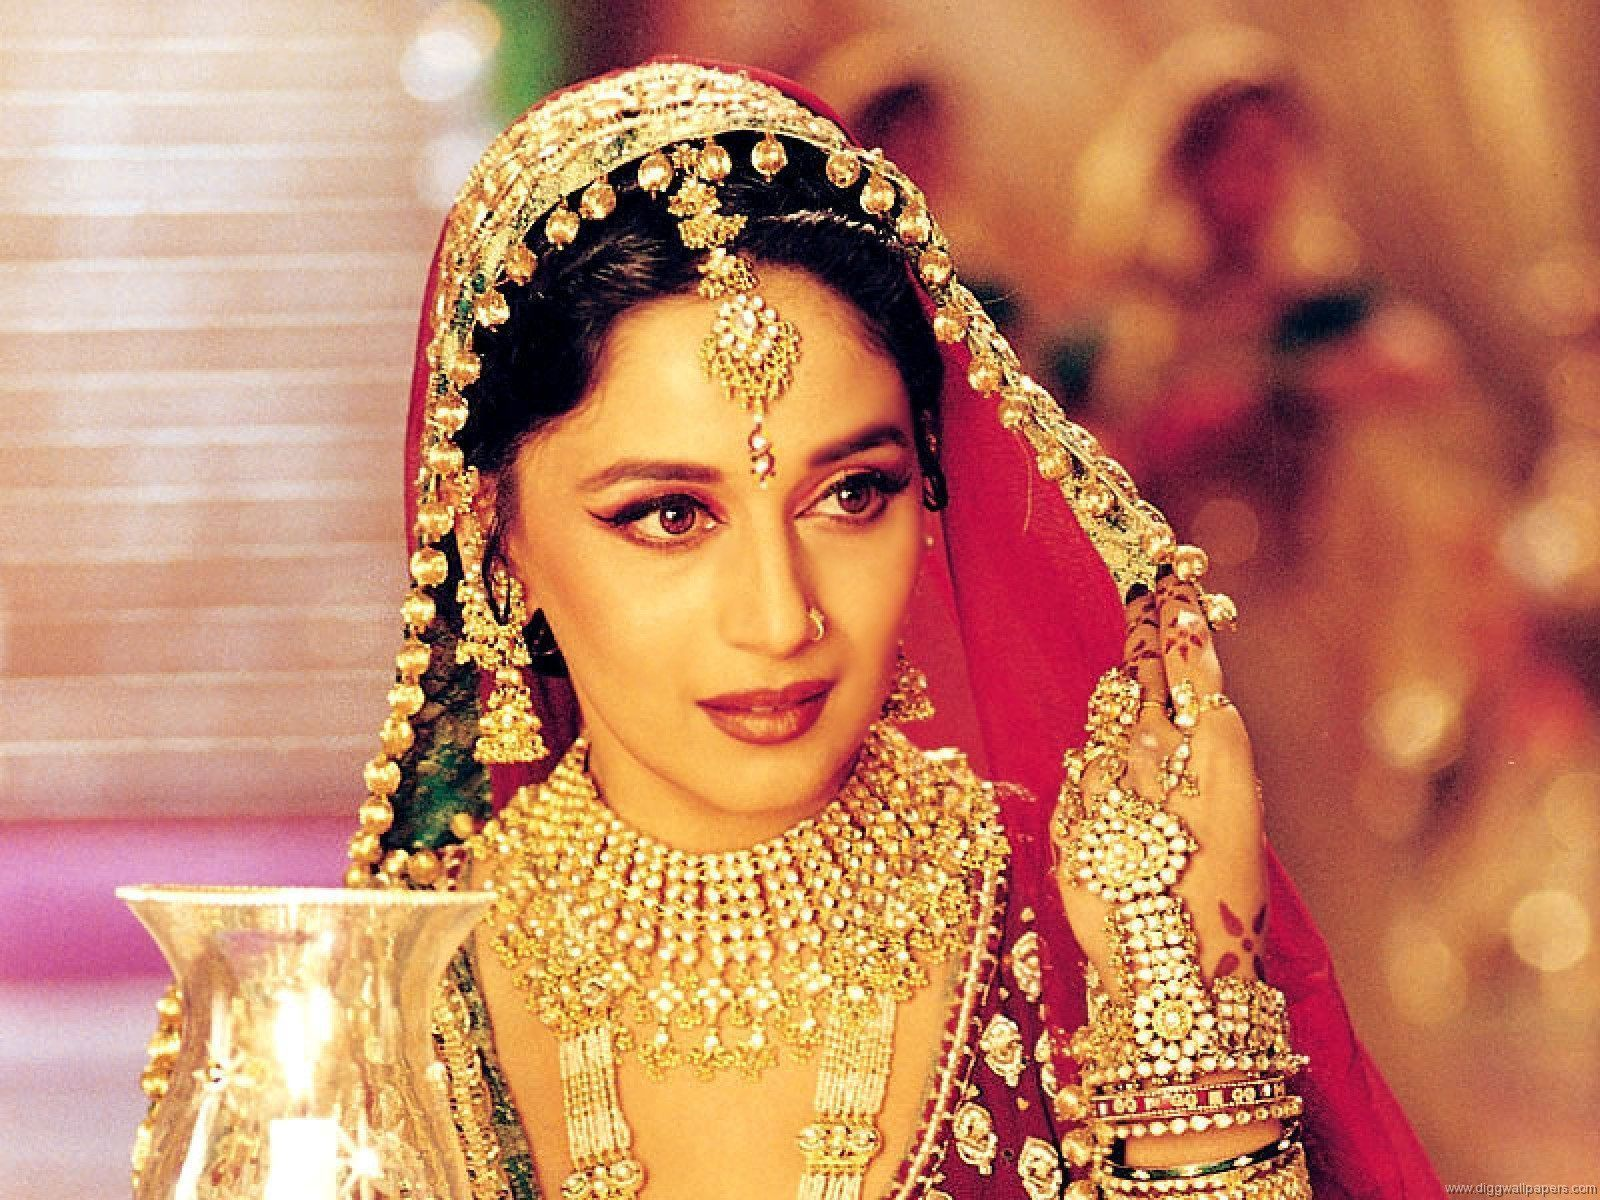 Happy birthday to the iconic Indian actress, Madhuri Dixit!